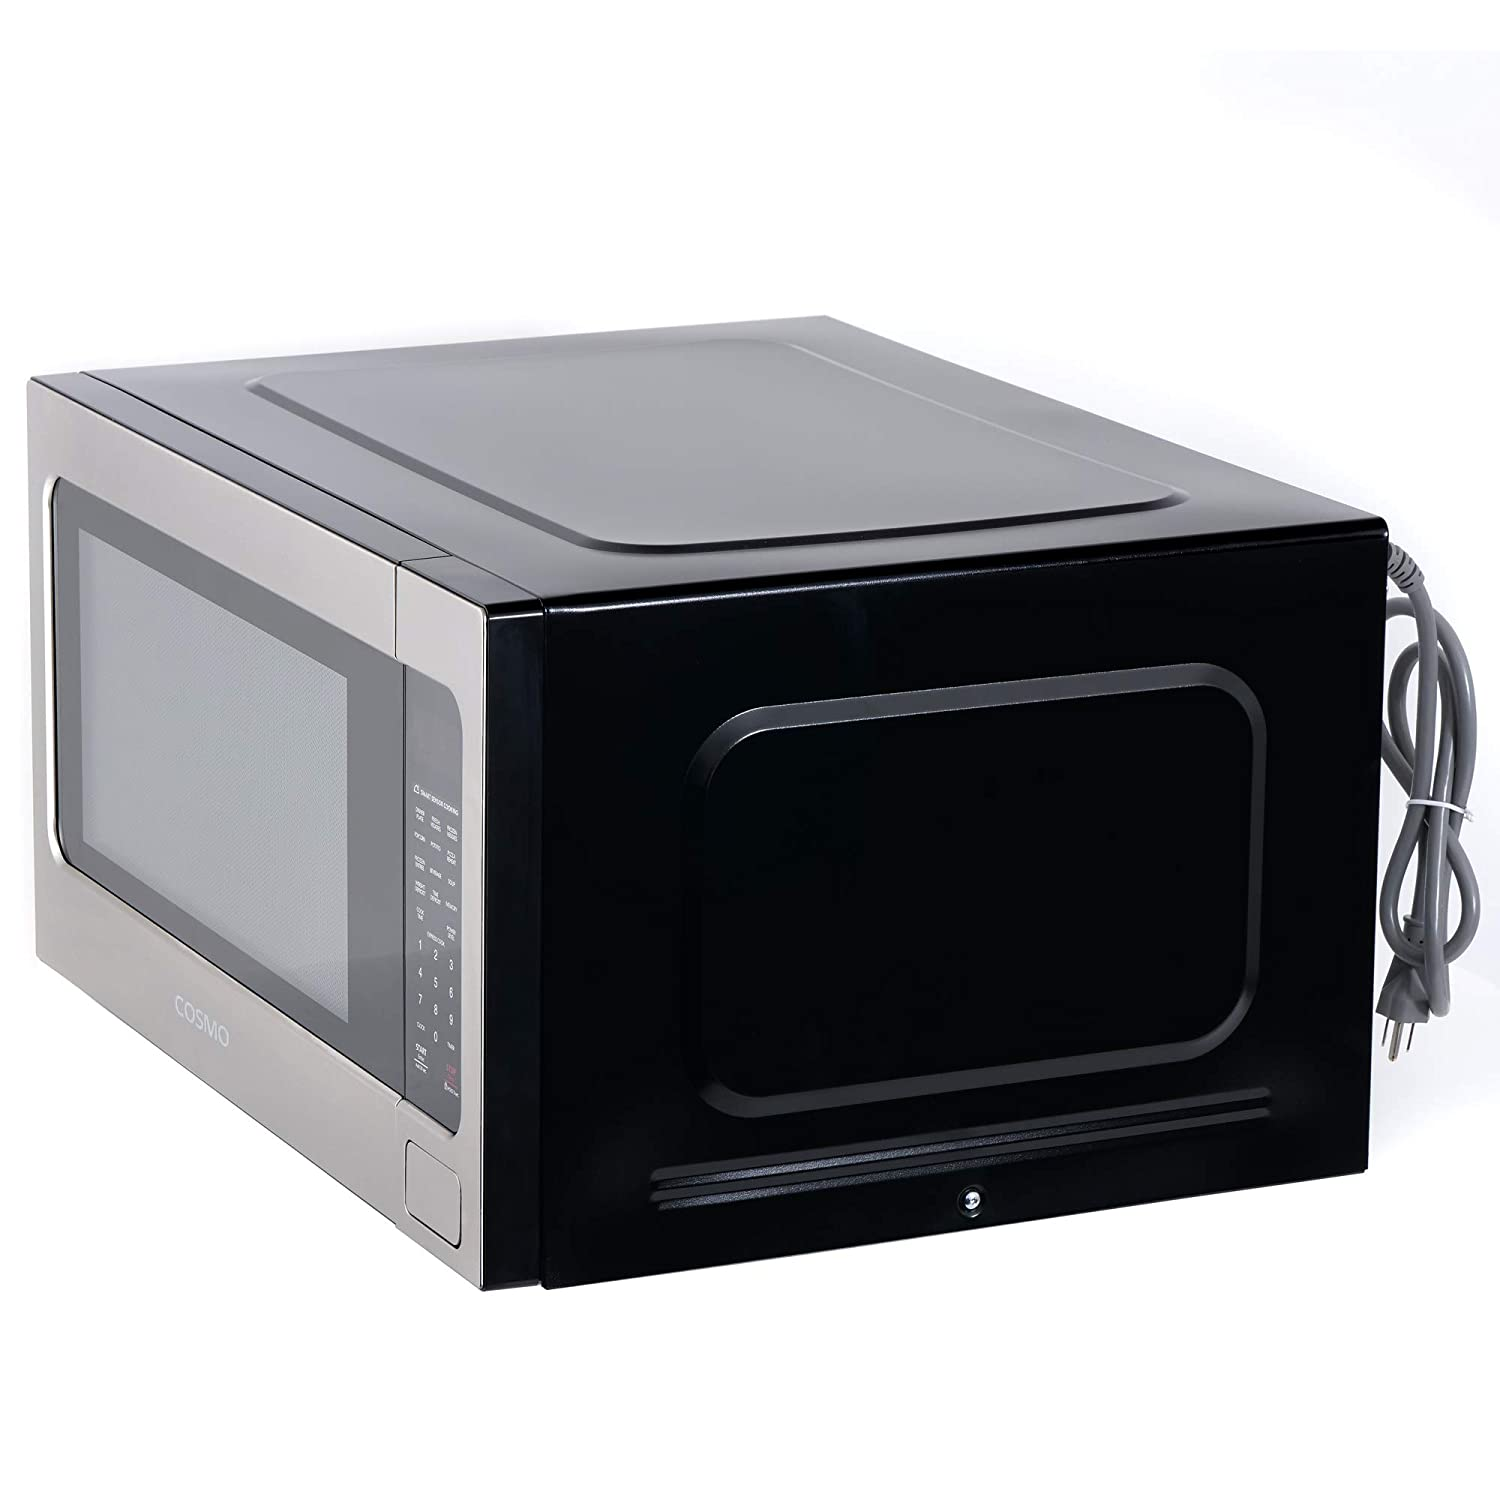 1200W /& 2.2 cu Stainless Steel 24 inch Touch Presets Cosmo COS-BIM22SSB Countertop//Built-in Microwave Oven with Smart Sensor ft Capacity